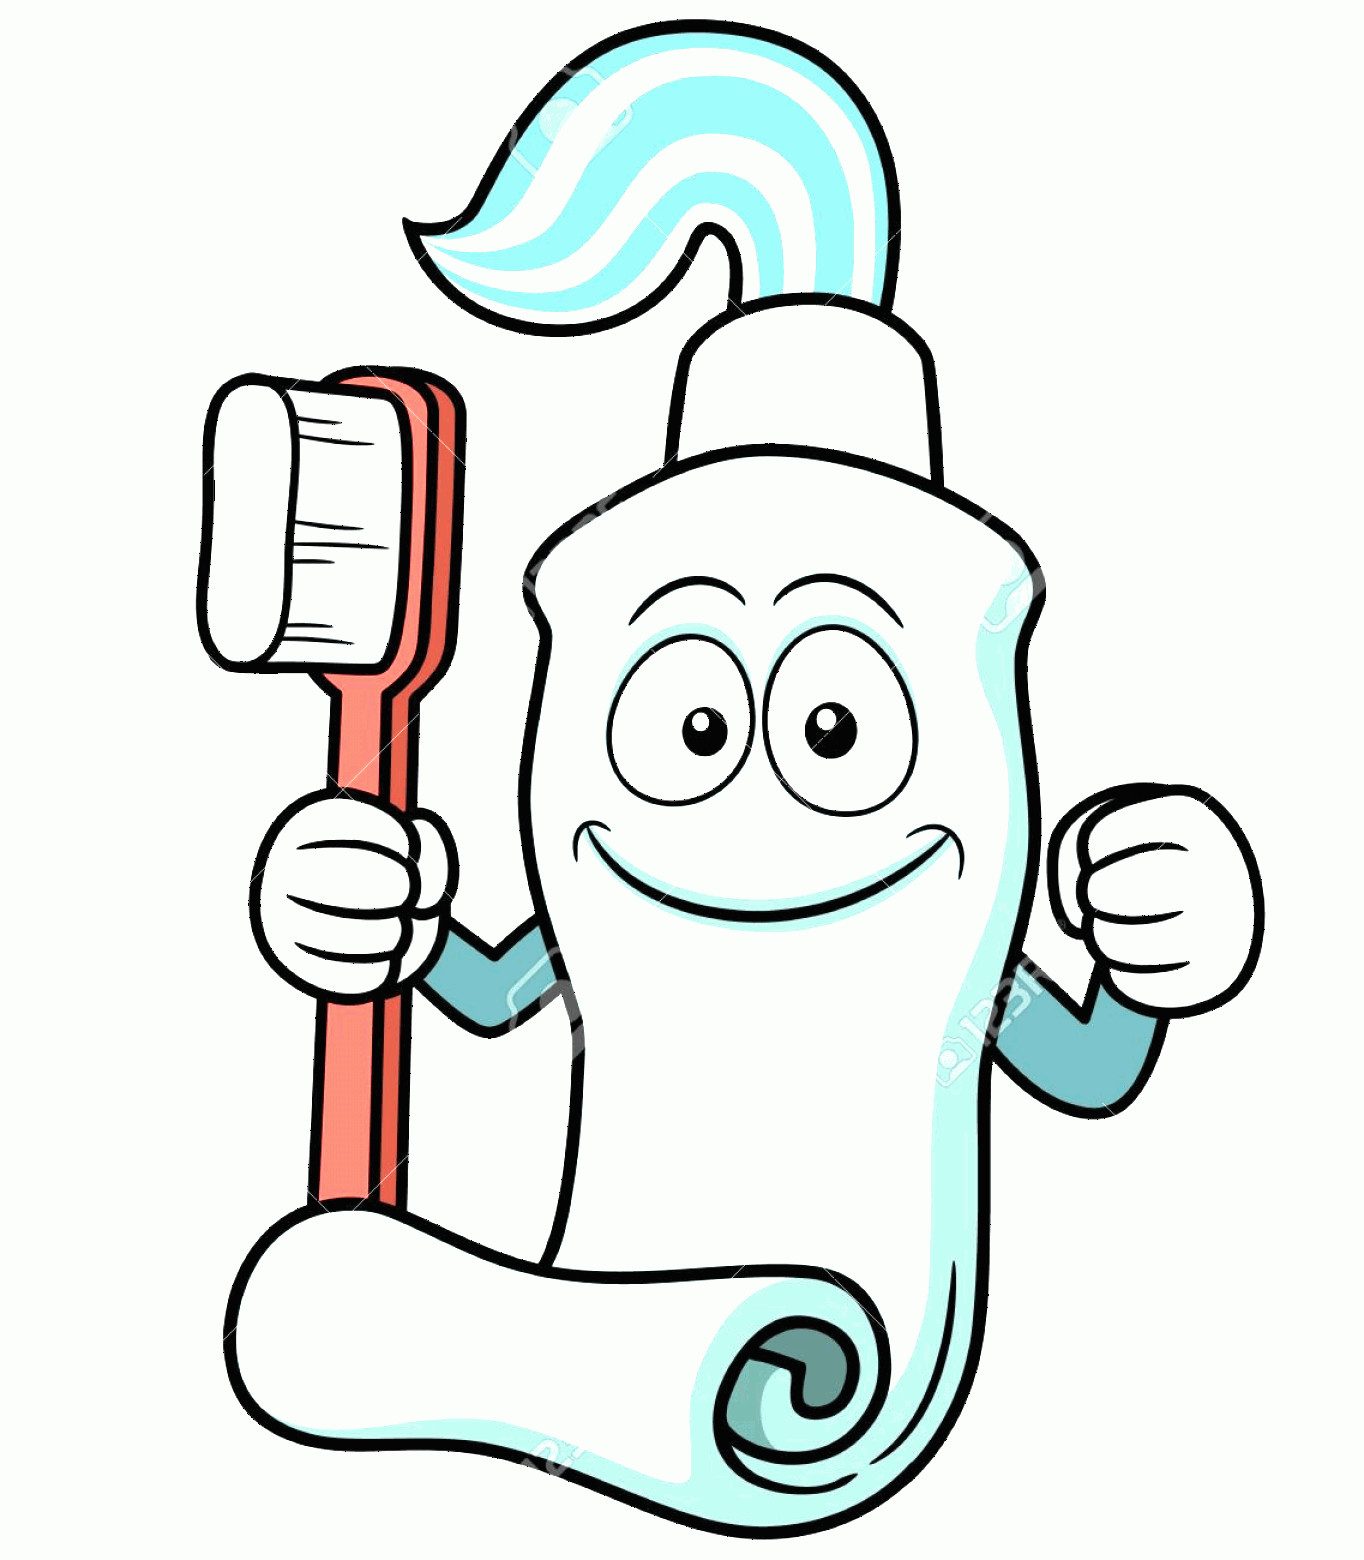 Toothpaste Cartoon Vector: Photovector Illustration Of Toothbrush And Toothpaste Cartoon